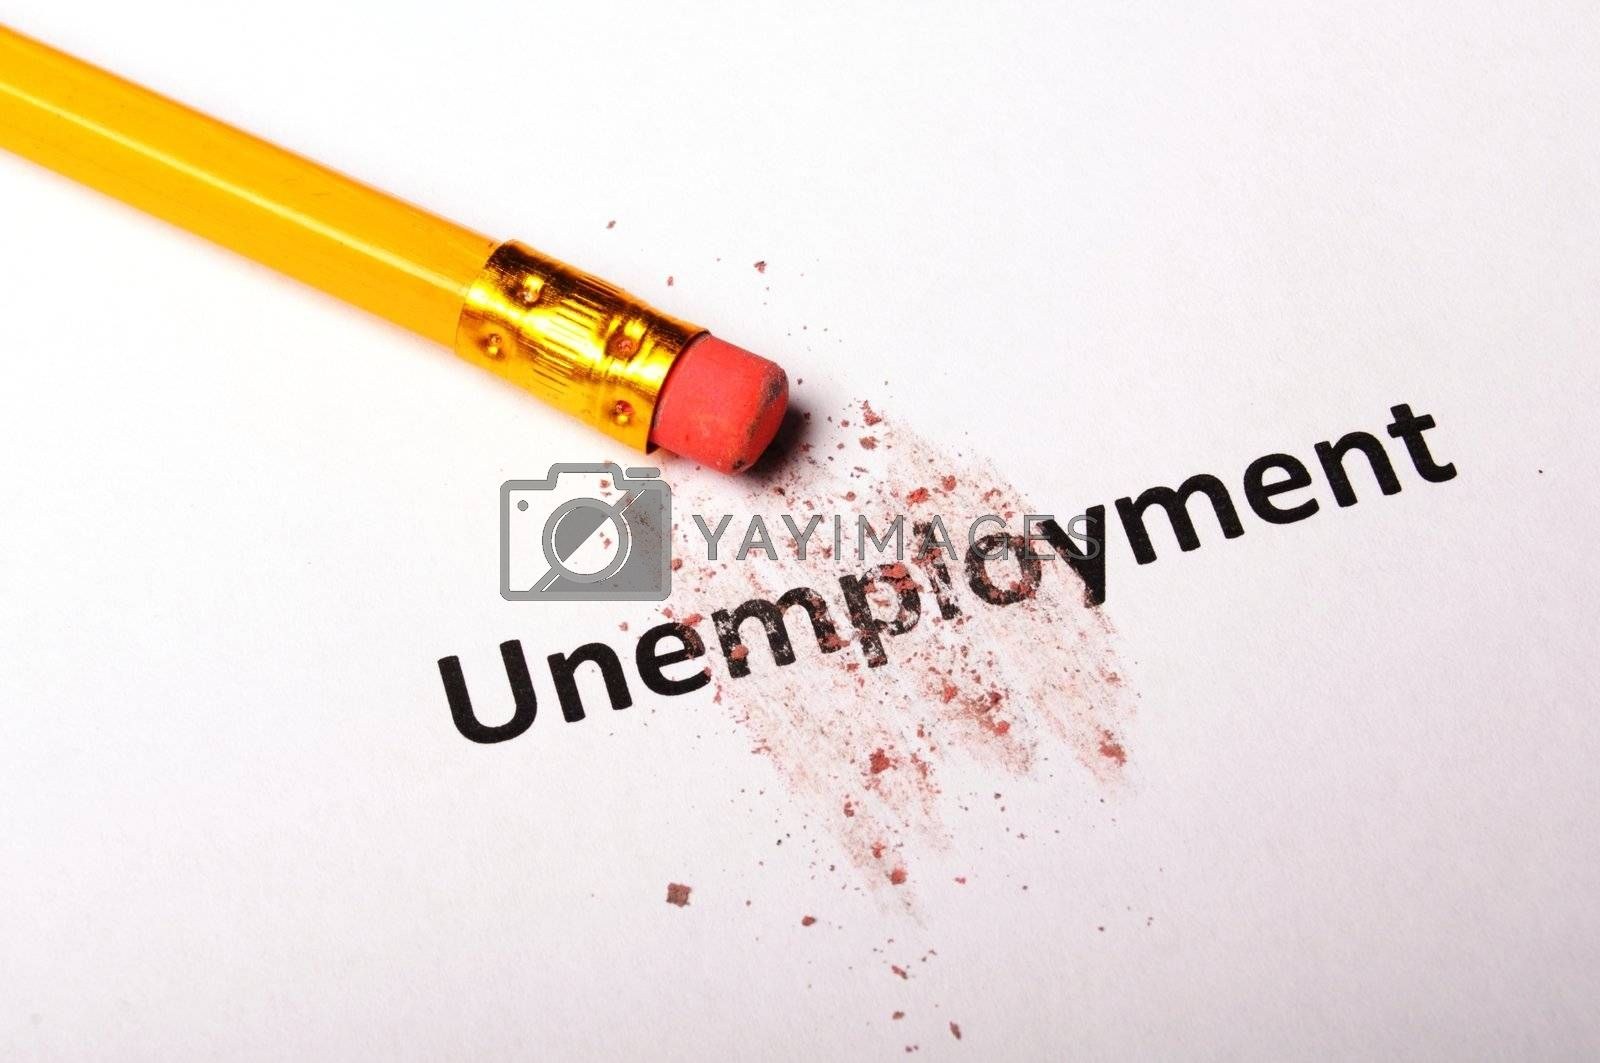 unemployment word and eraser showing job or work concept